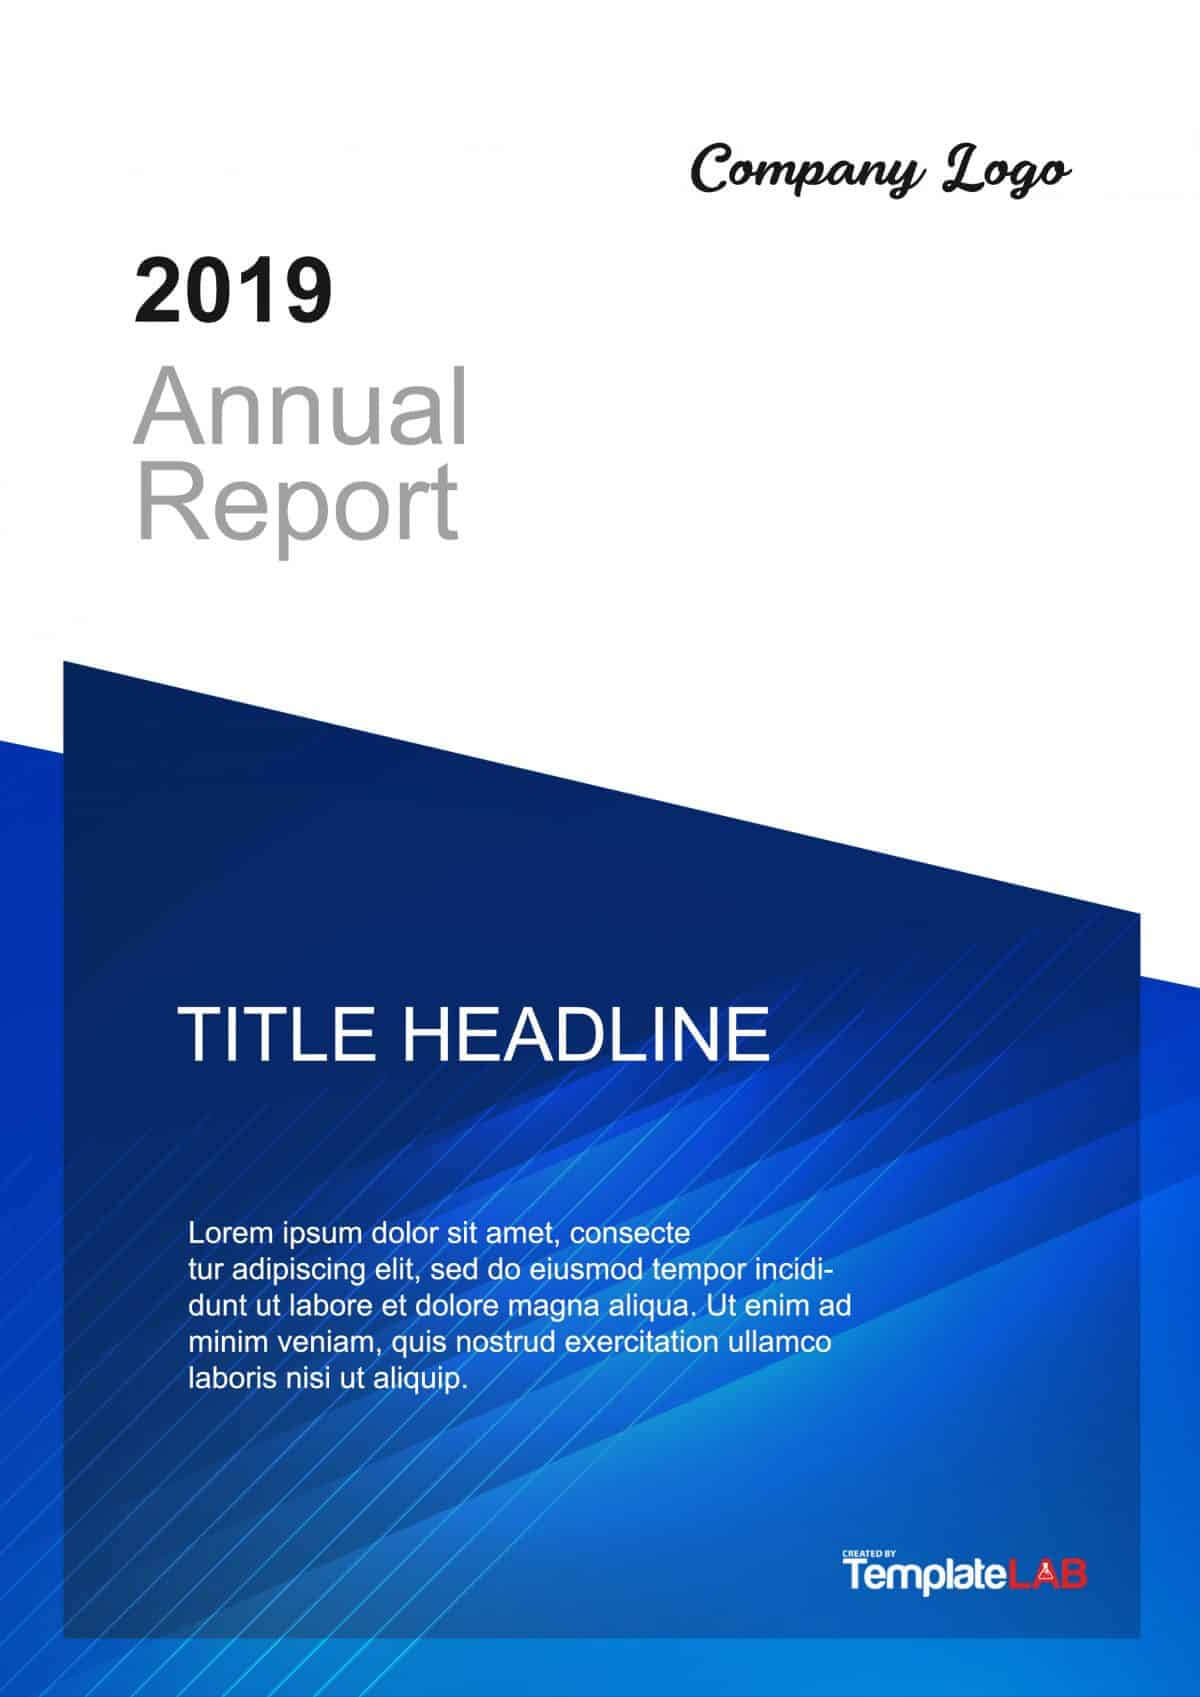 001 Template Ideas Report Cover Page Templatelab inside Cover Page For Annual Report Template